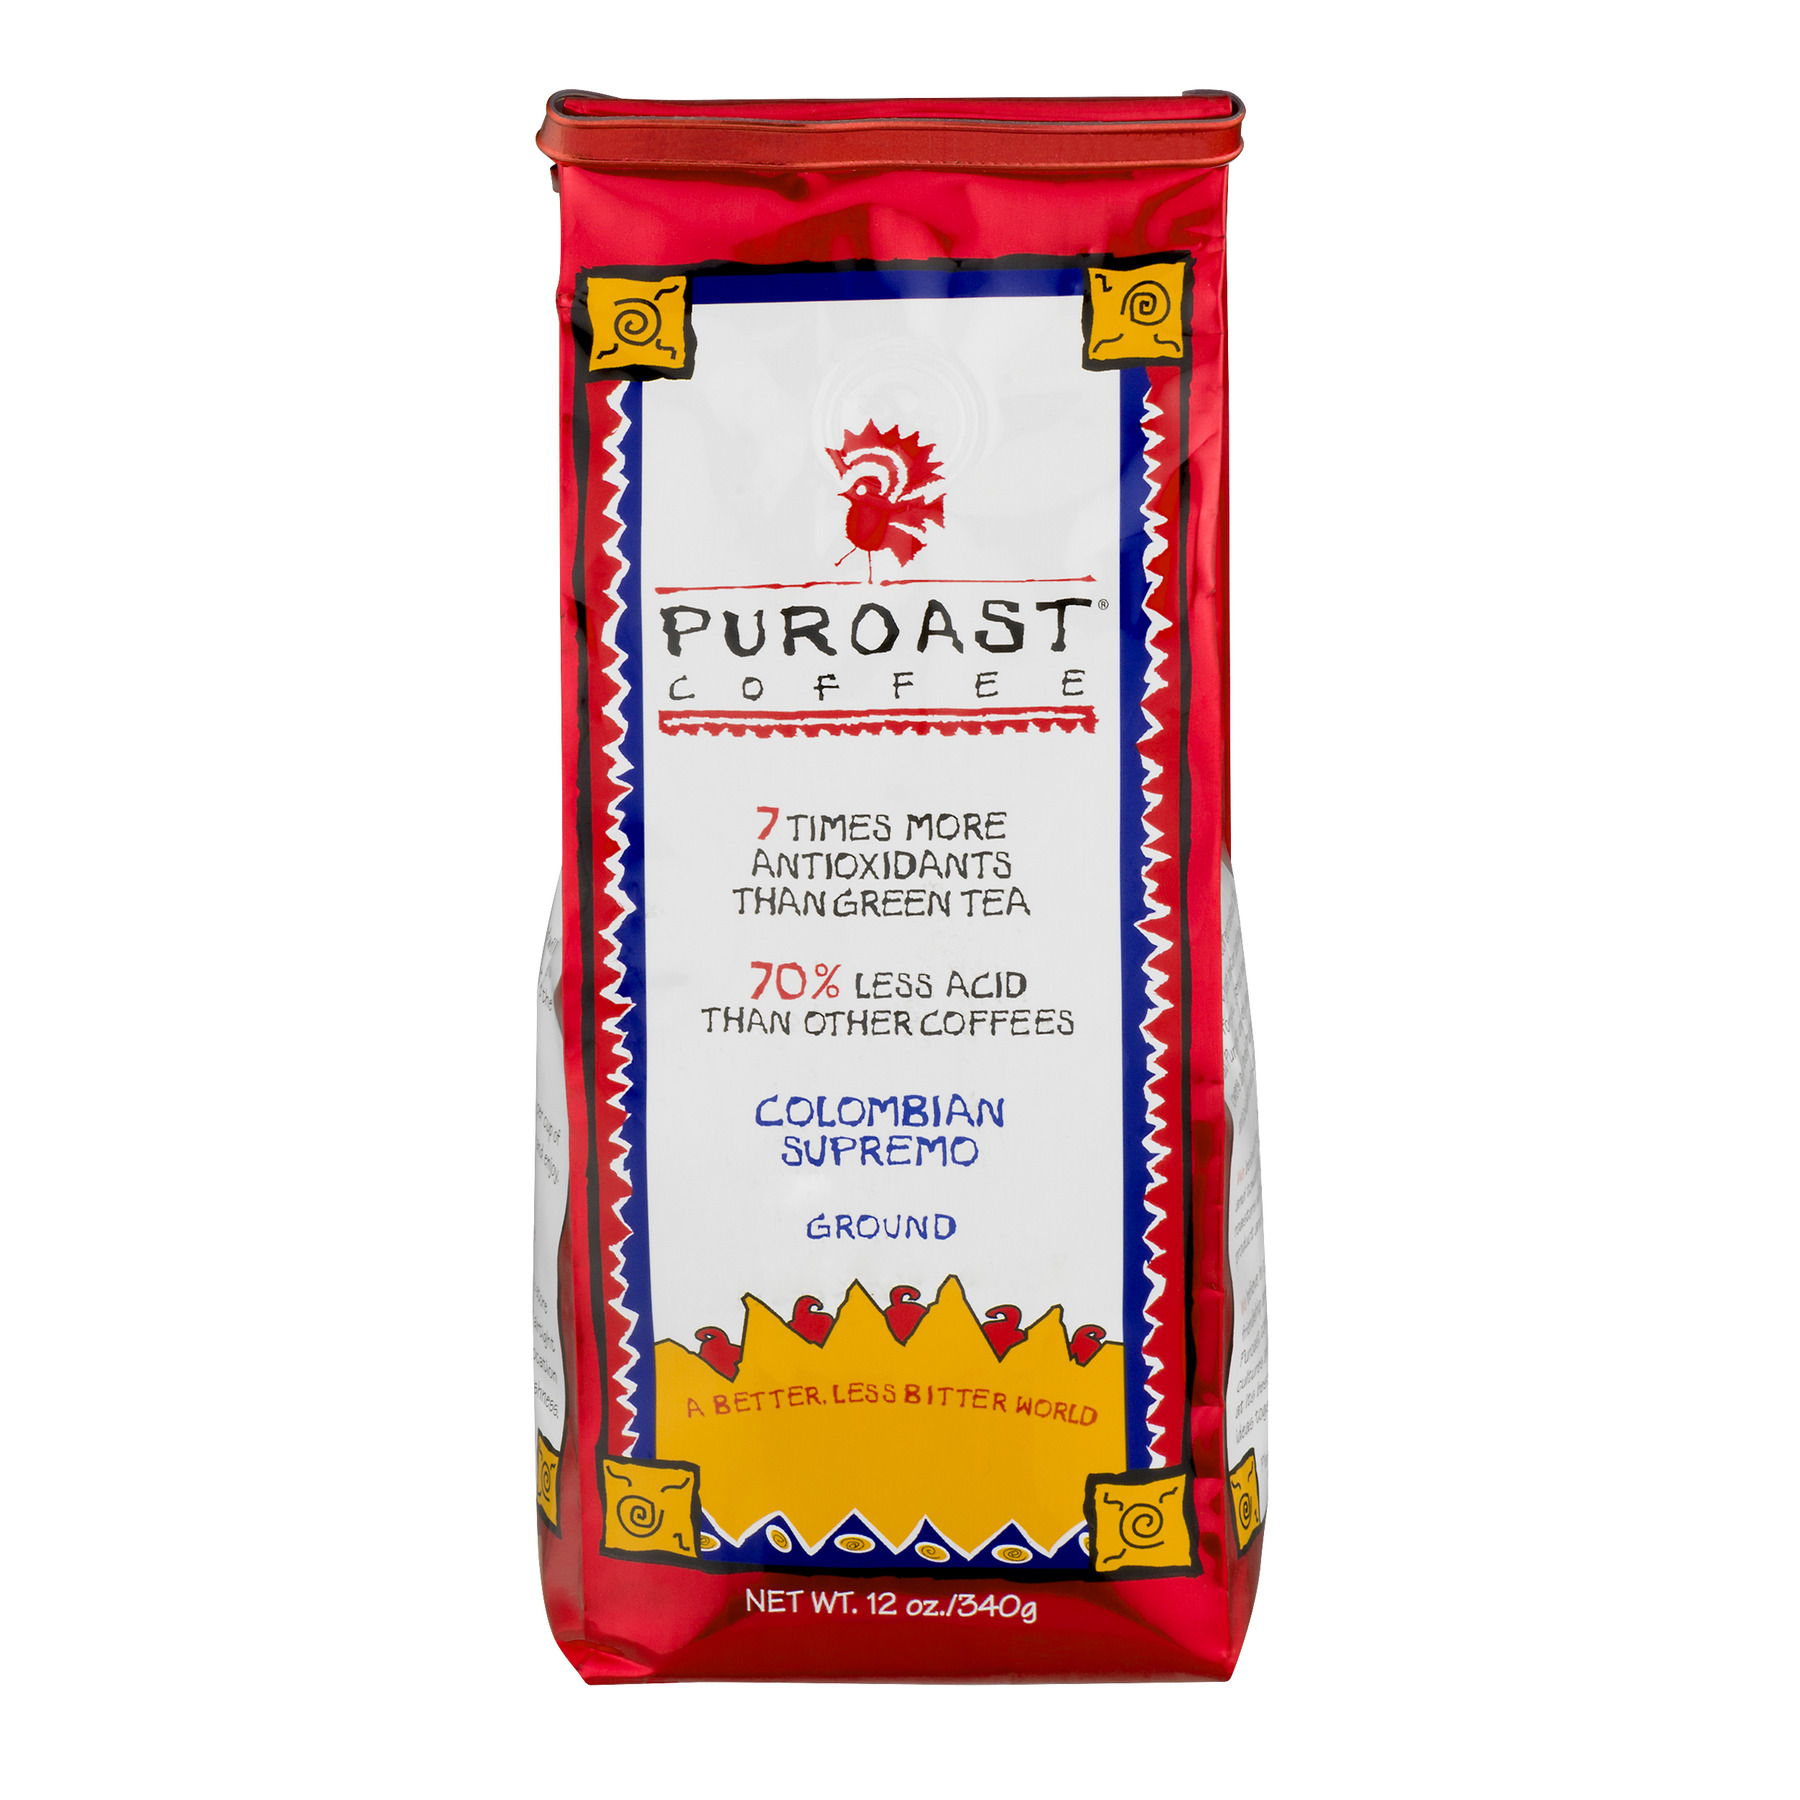 Puroast Coffee Ground Colombian Supremo, 12.0 OZ